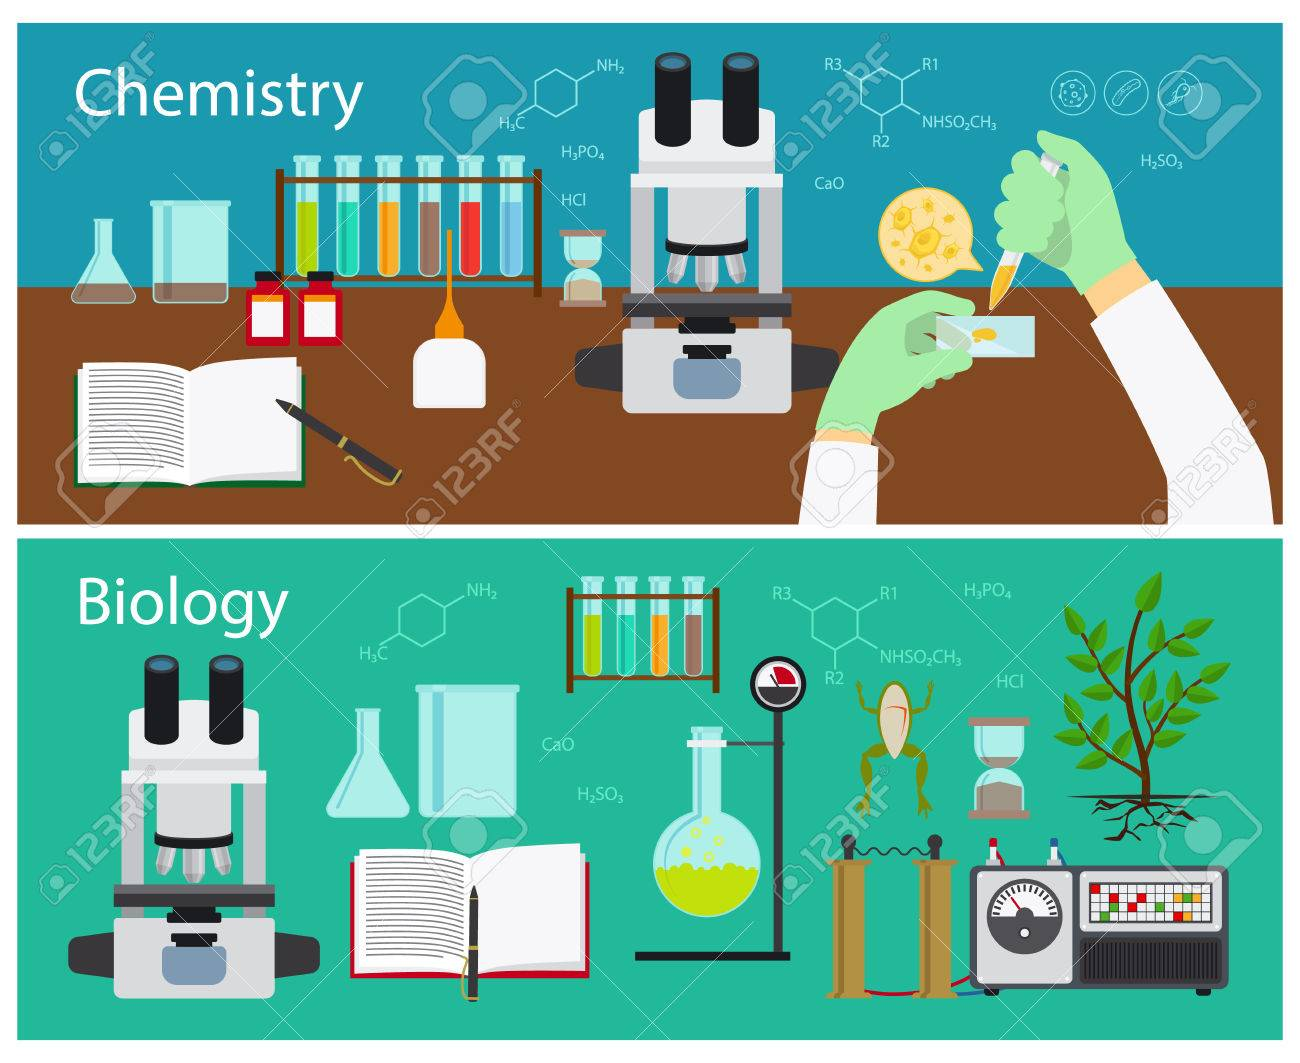 Chemistry and biology research vector banners set - 48096299